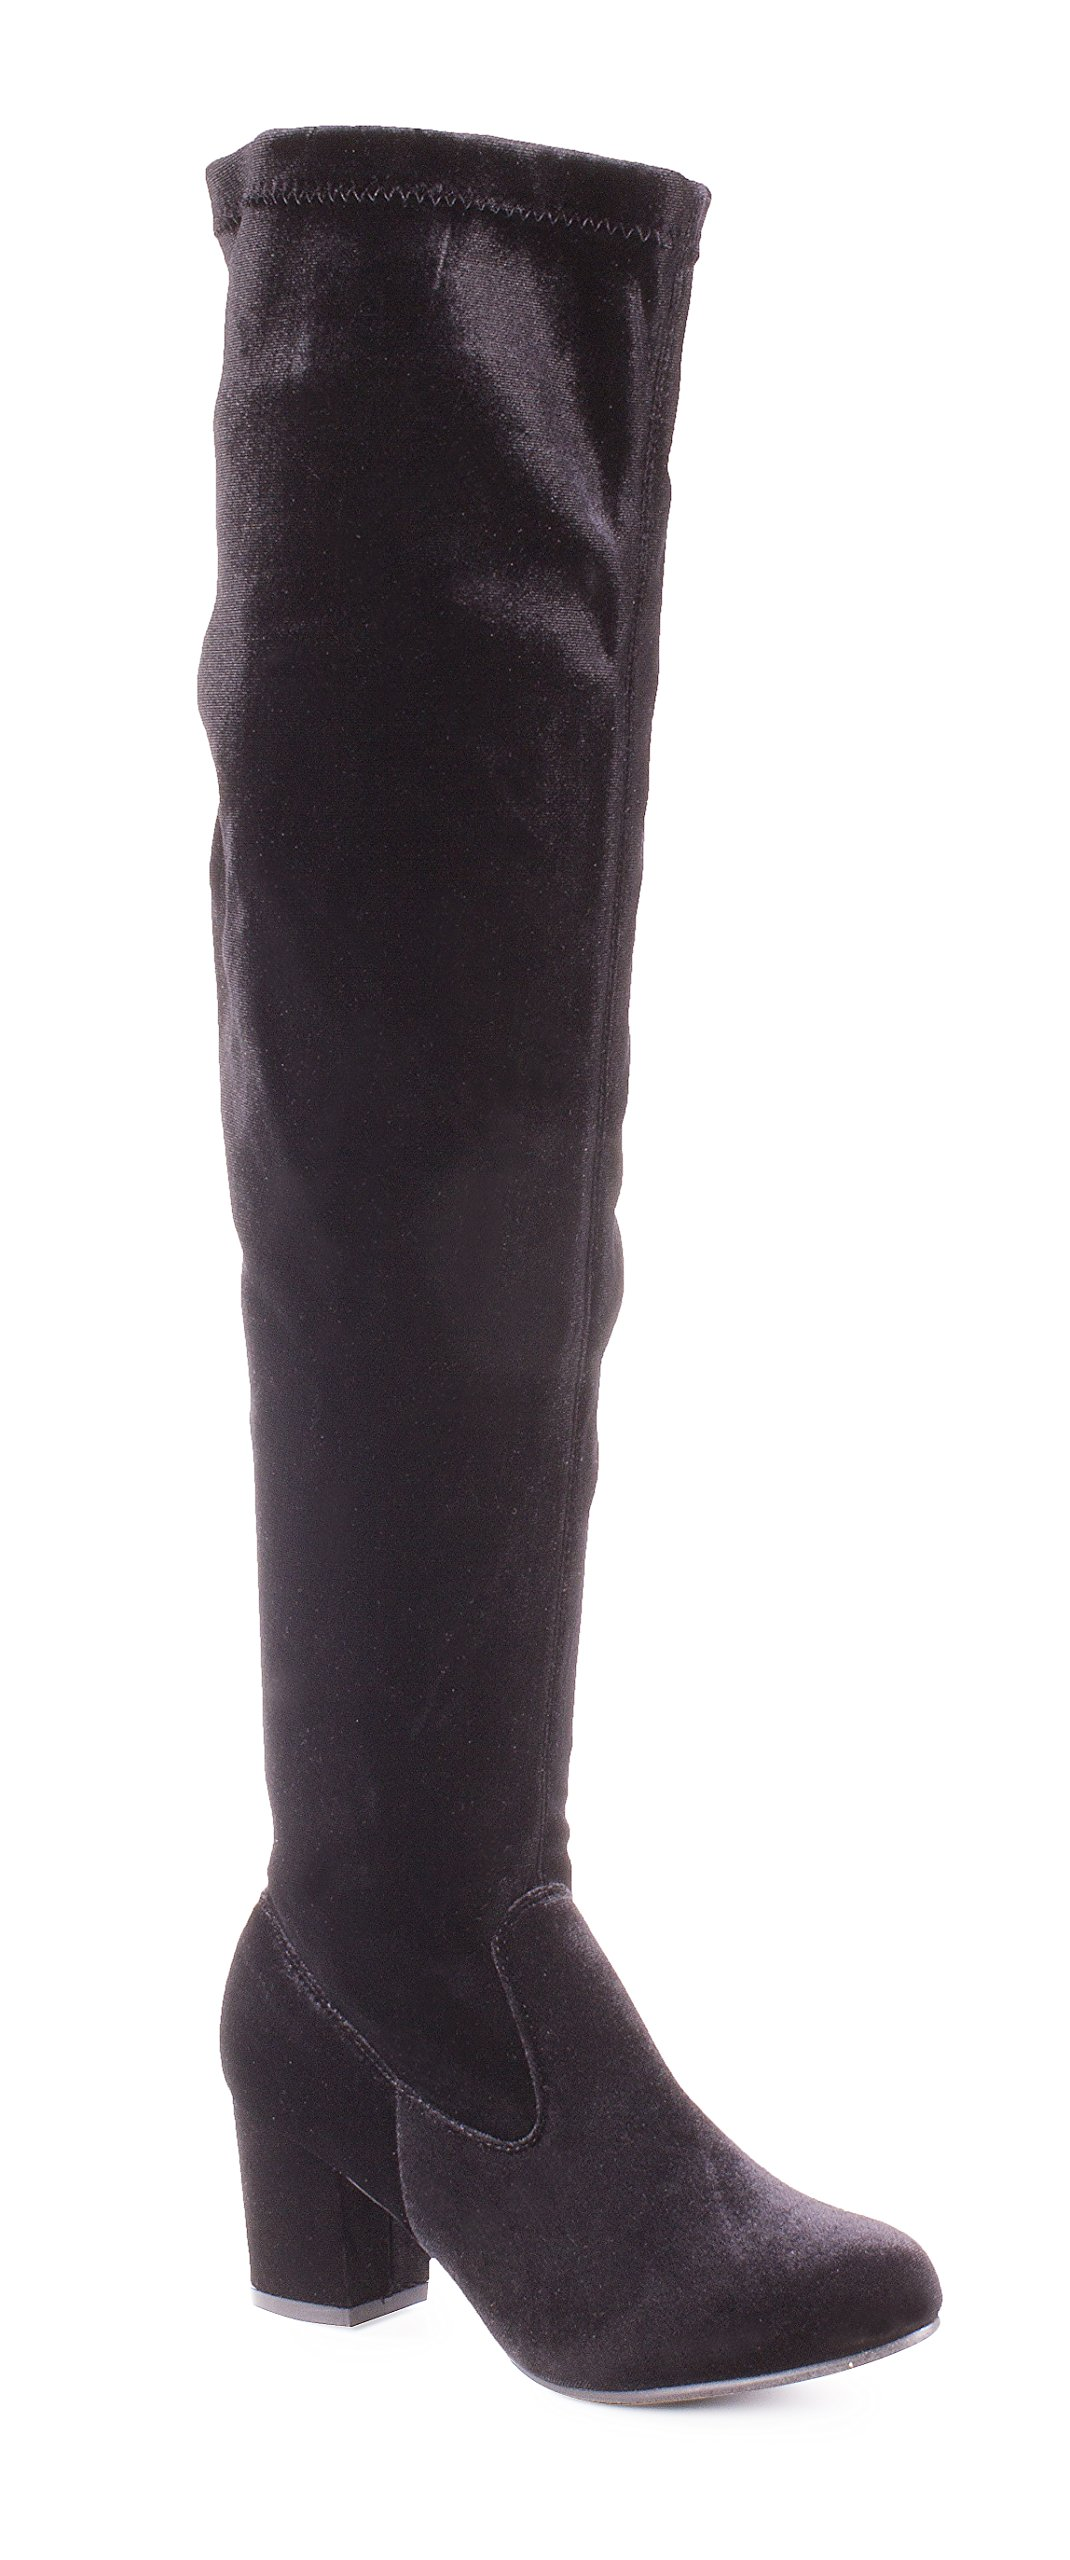 Charles Albert Women's Thigh High Over-The-Knee Chunky Heel Velvet Boots in Black Size: 8 by Charles Albert